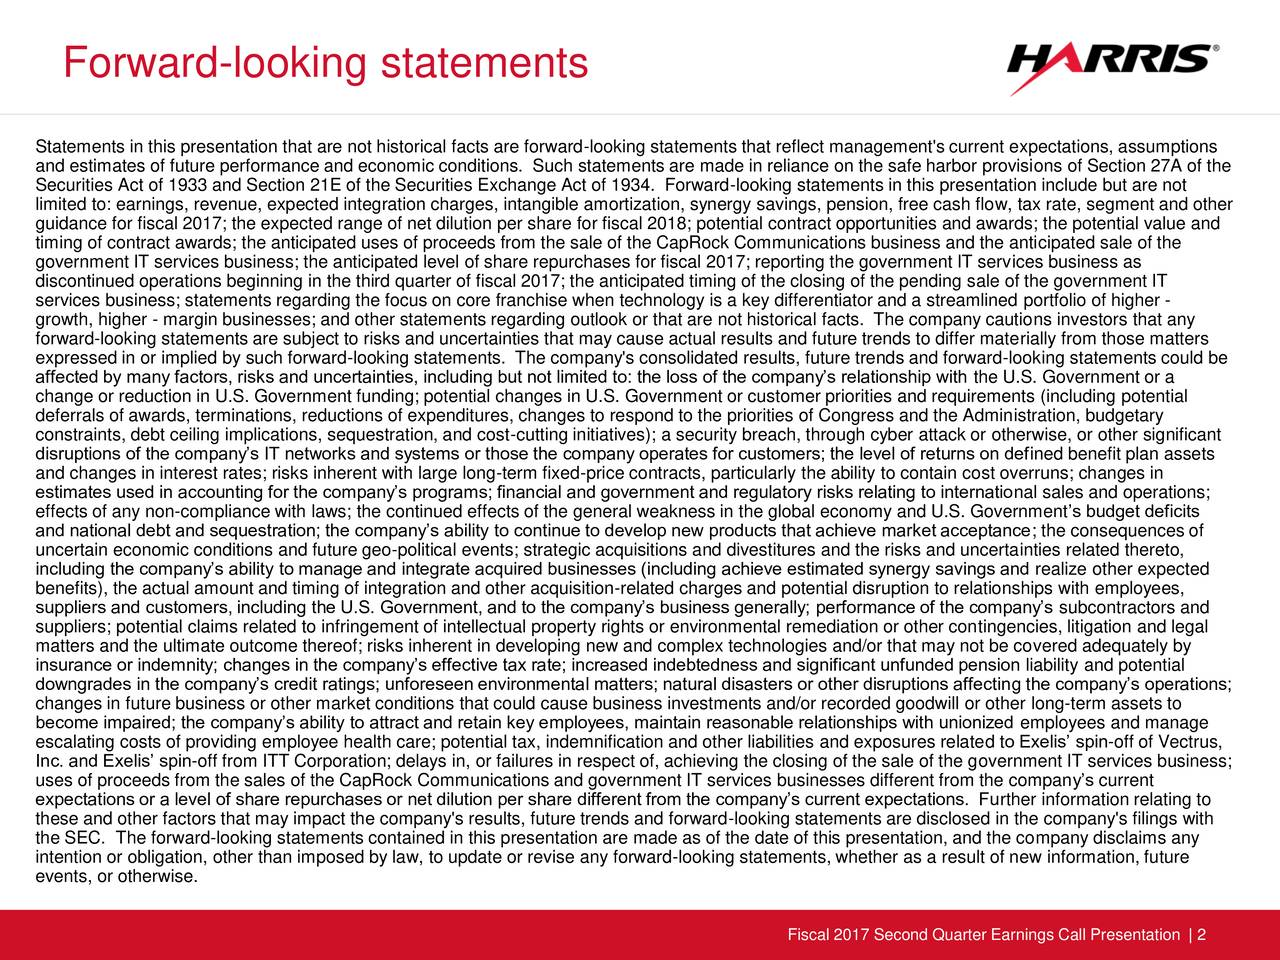 Statements in this presentation that are not historical facts are forward-looking statements that reflect management's current expectations, assumptions and estimates of future performance and economic conditions. Such statements are made in reliance on the safe harbor provisions of Section 27A of the Securities Act of 1933 and Section 21E of the Securities Exchange Act of 1934. Forward-looking statements in this presentation include but are not limited to: earnings, revenue, expected integration charges, intangible amortization, synergy savings, pension, free cash flow, tax rate, segment and other guidance for fiscal 2017; the expected range of net dilution per share for fiscal 2018; potential contract opportunities and awards; the potential value and timing of contract awards; the anticipated uses of proceeds from the sale of the CapRock Communications business and the anticipated sale of the government IT services business; the anticipated level of share repurchases for fiscal 2017; reporting the government IT services business as discontinued operations beginning in the third quarter of fiscal 2017; the anticipated timing of the closing of the pending sale of the government IT services business; statements regarding the focus on core franchise when technology is a key differentiator and a streamlined portfolio of higher - growth, higher - margin businesses; and other statements regarding outlook or that are not historical facts. The company cautions investors that any forward-looking statements are subject to risks and uncertainties that may cause actual results and future trends to differ materially from those matters expressed in or implied by such forward-looking statements. The company's consolidated results, future trends and forward-looking statements could be affected by many factors, risks and uncertainties, including but not limited to: the loss of the companys relationship with the U.S. Government or a change or reduction in U.S. Government funding; po